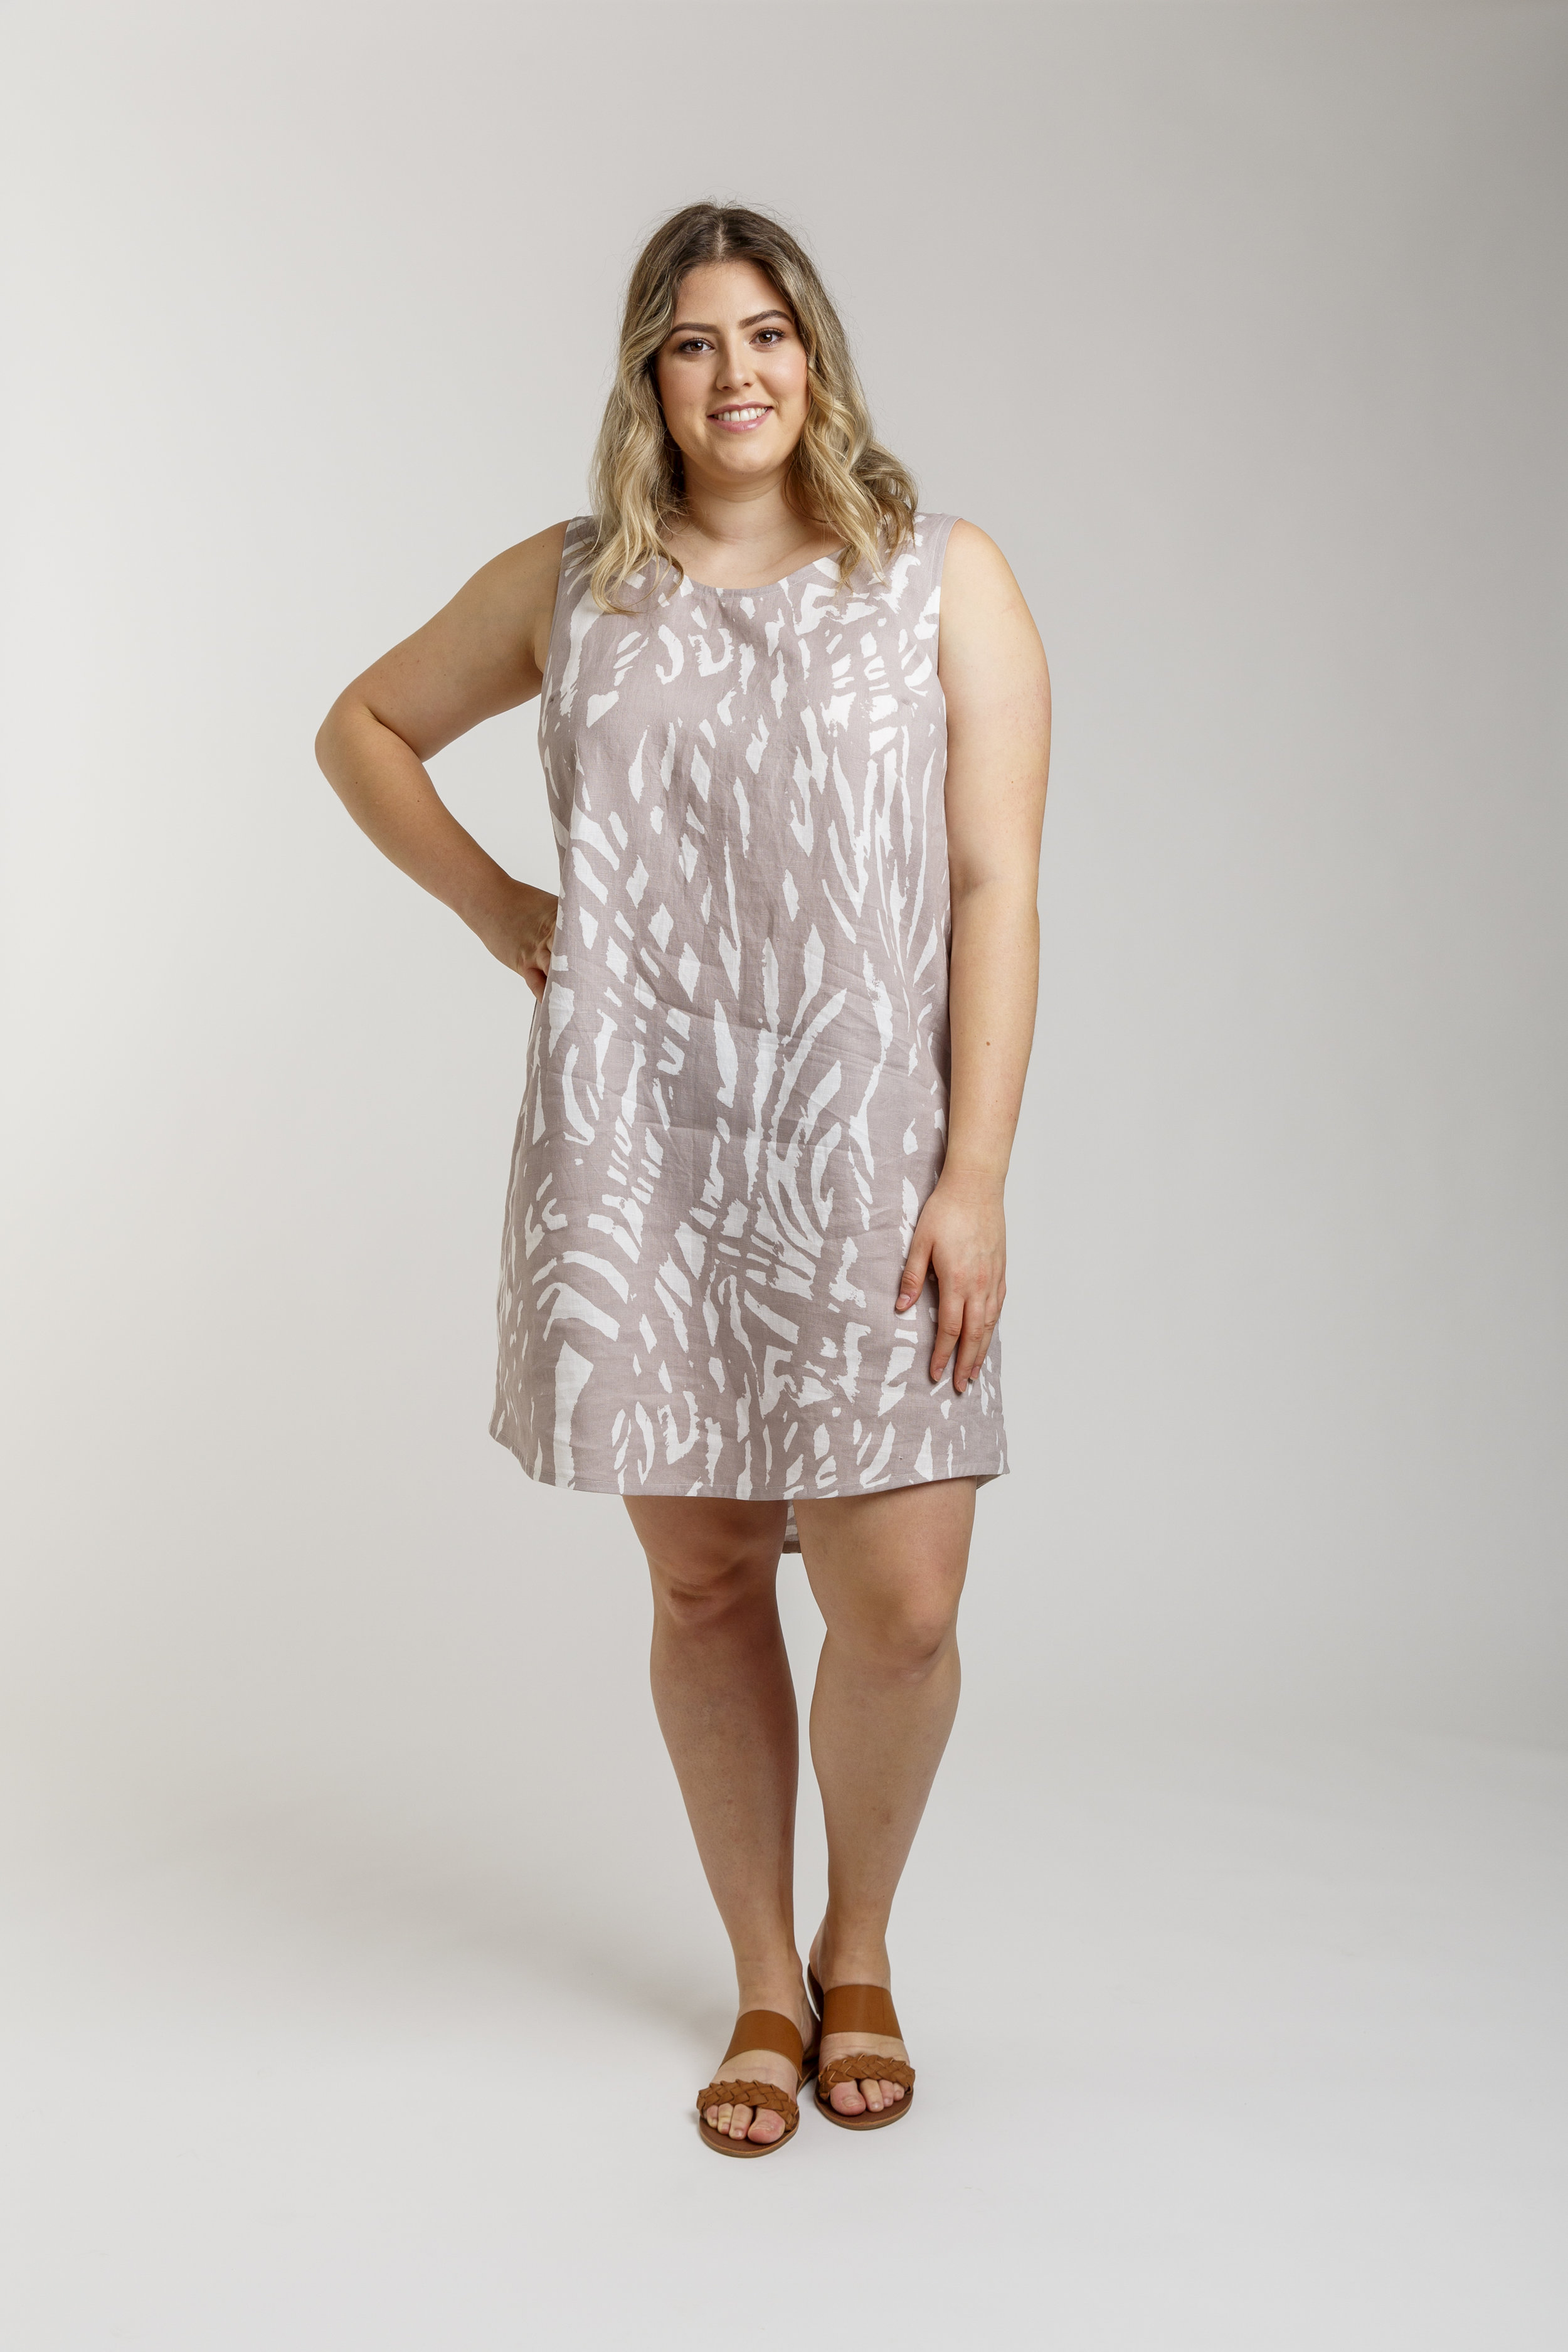 The Eucalypt dress & top Curve sewing pattern from Megan Neilsen